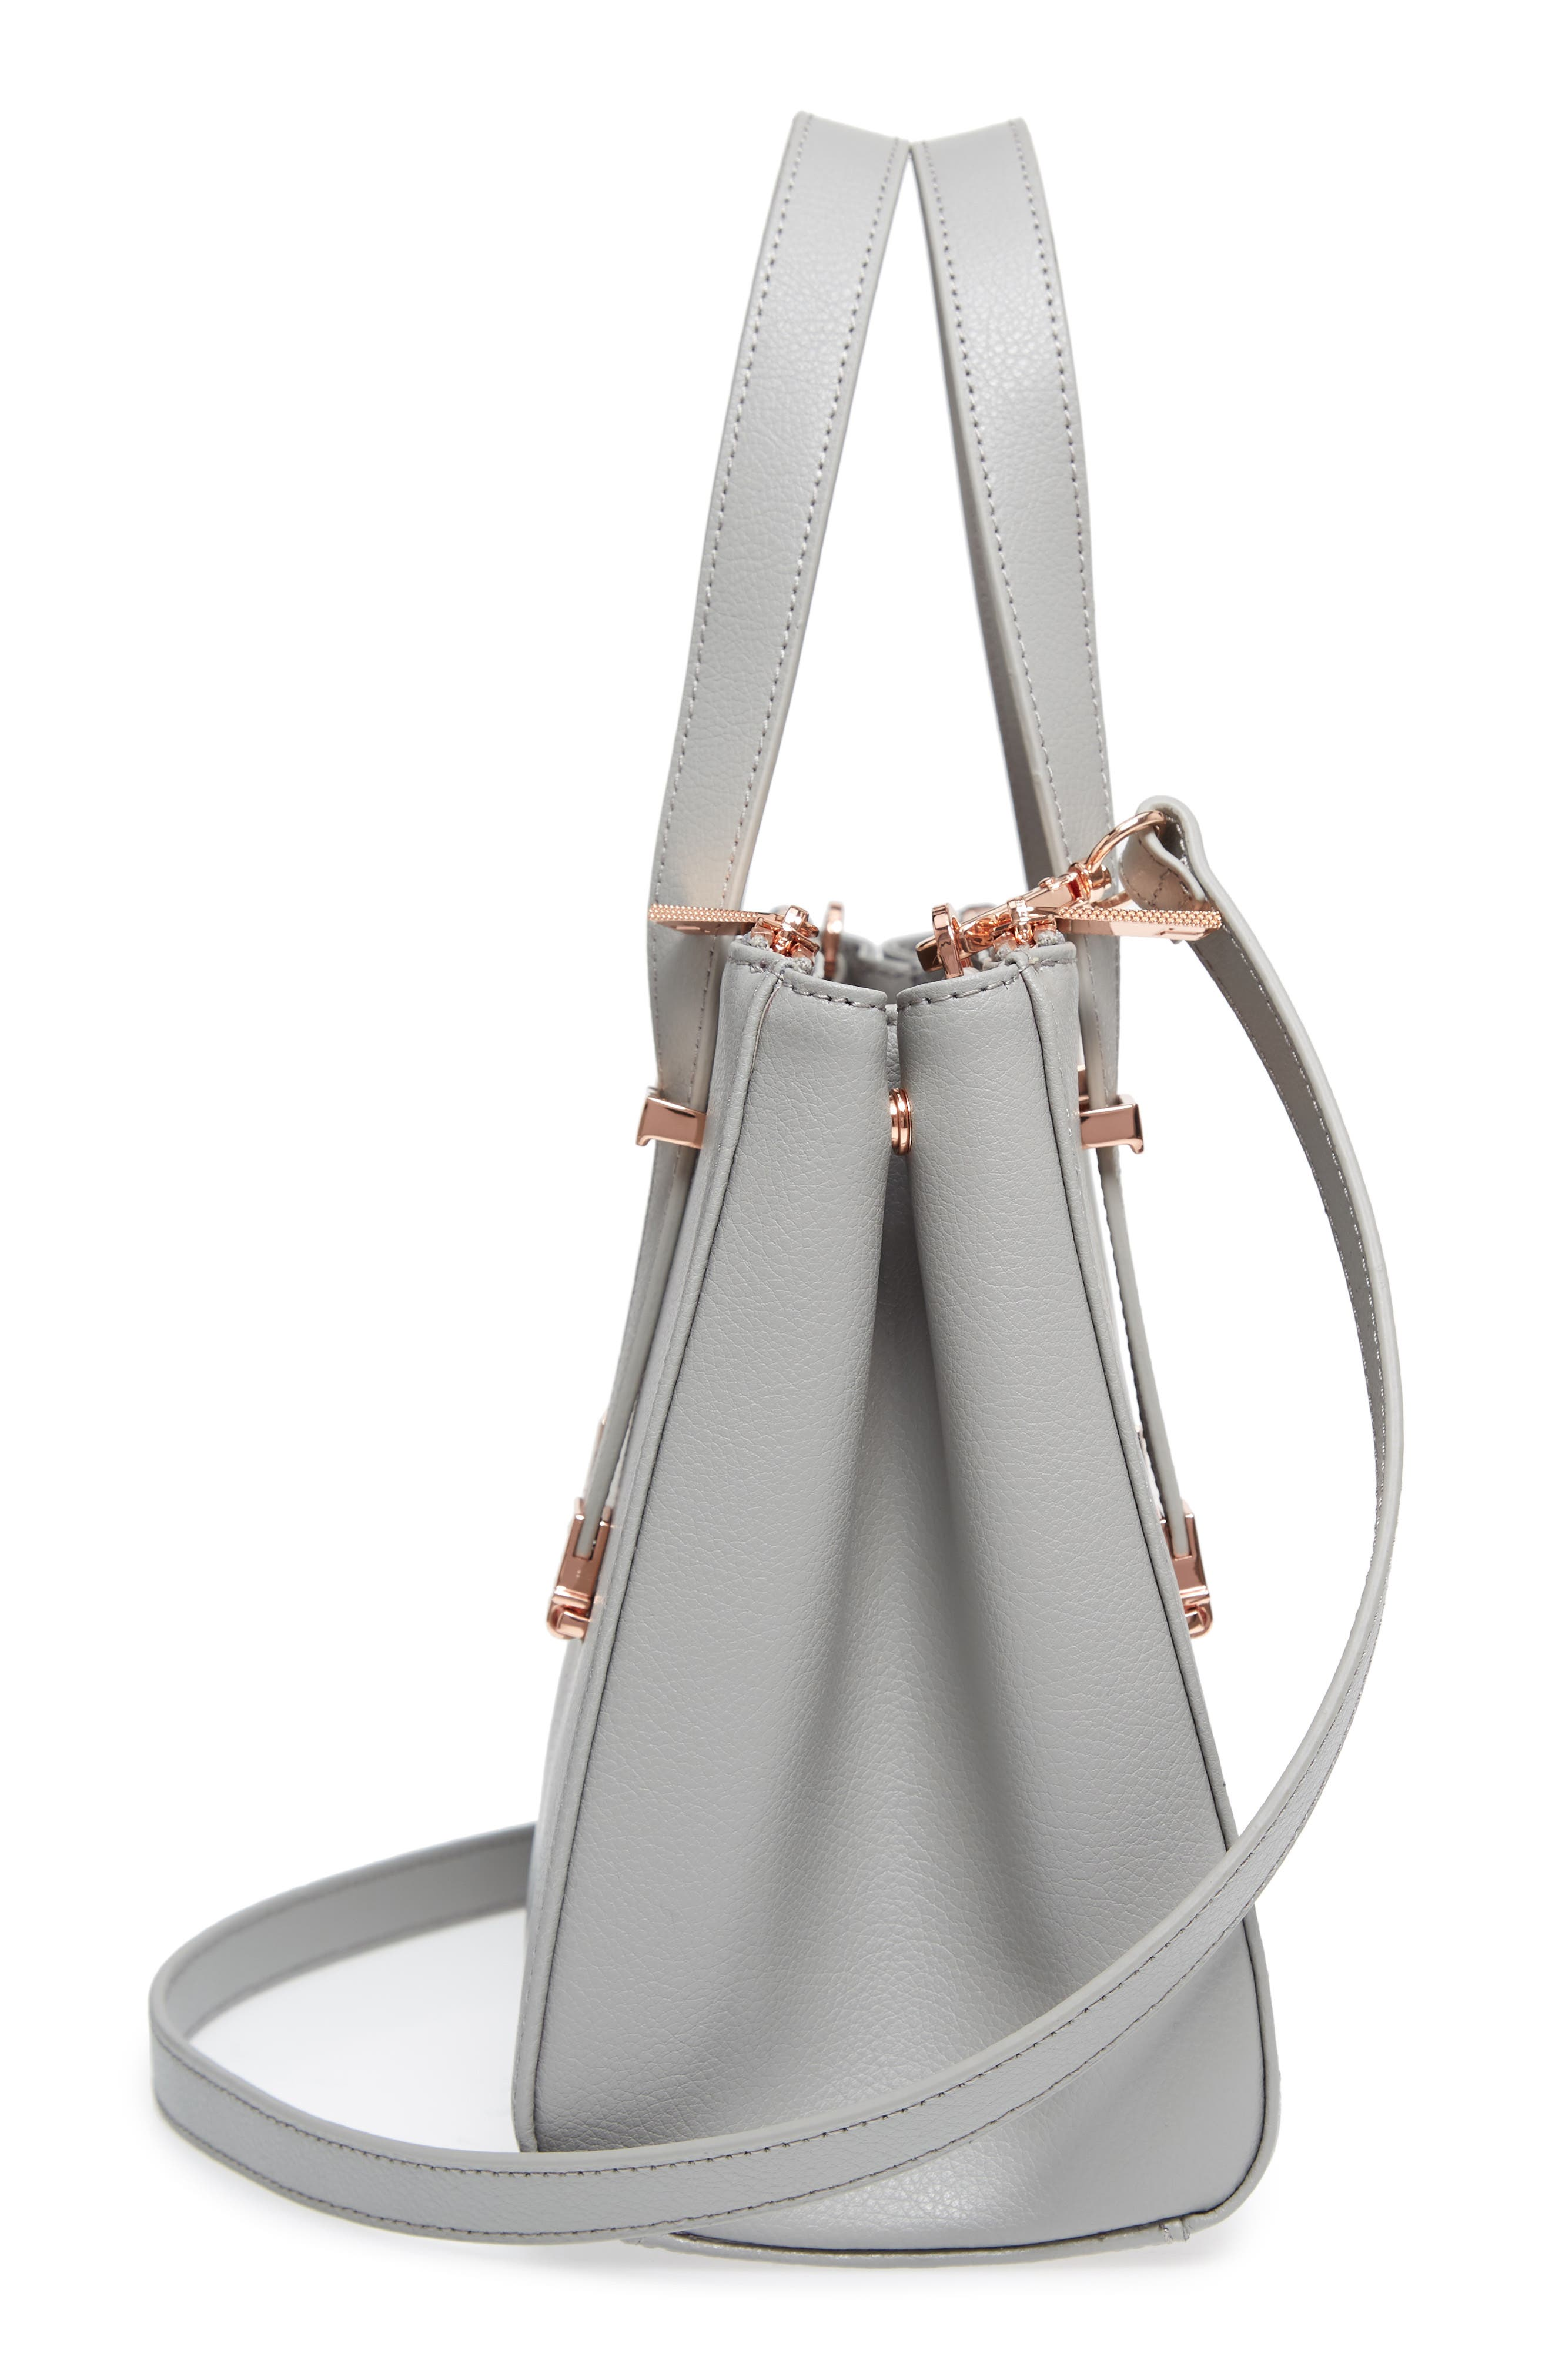 Audreyy Small Adjustable Handle Leather Shopper,                             Alternate thumbnail 5, color,                             Mid Grey